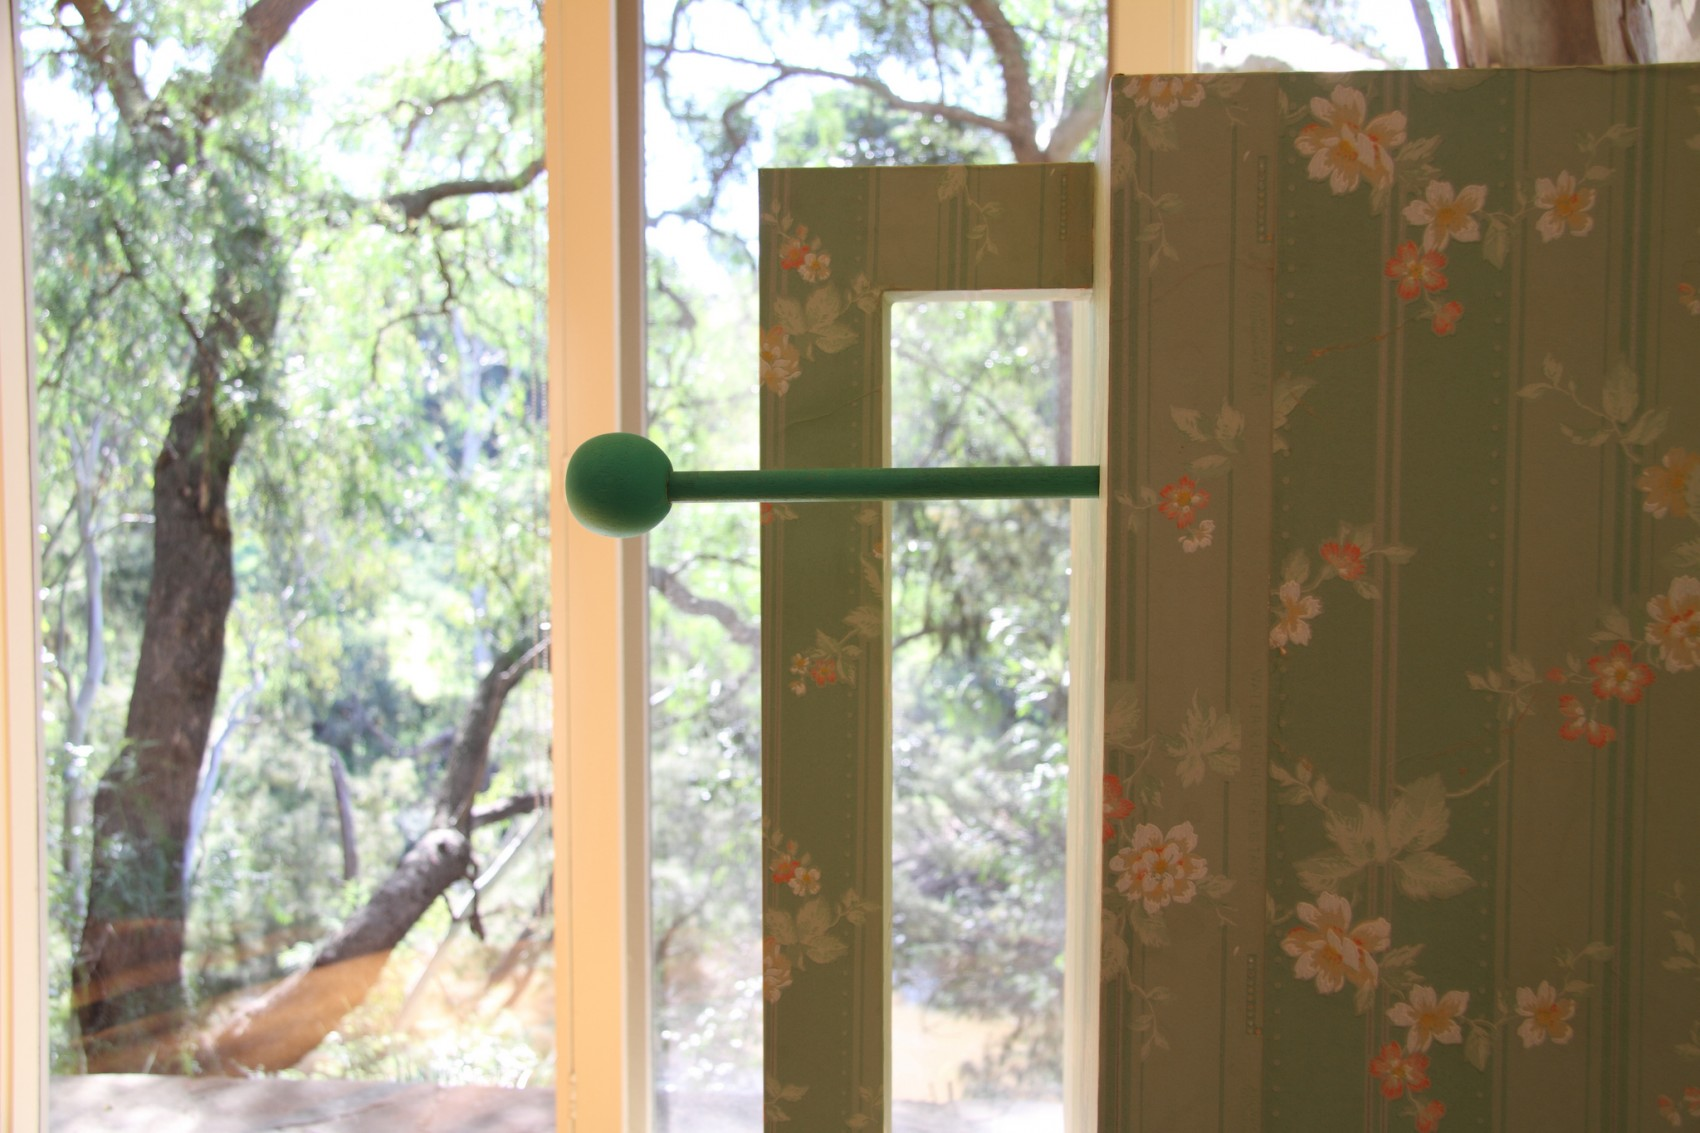 Pale green floral patterned box next to a window through which we see tree foliage